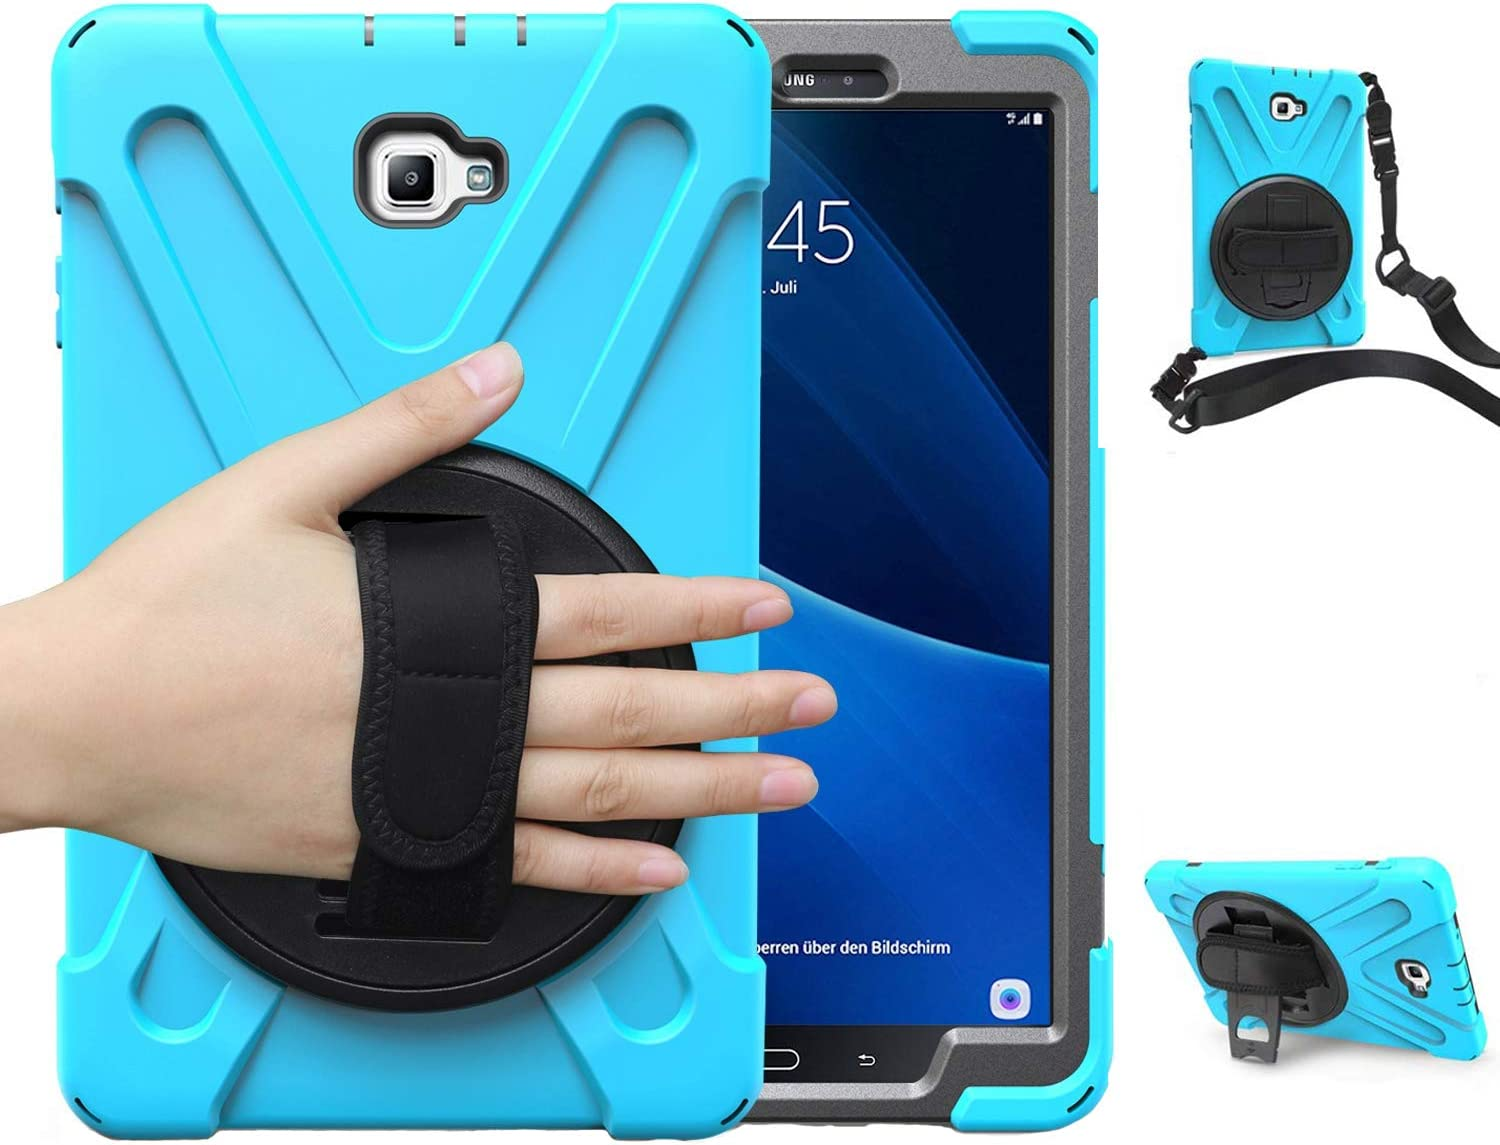 Case for Samsung Galaxy Tab A 10.1 2016, SM-T580/T585 Herize Three Layer Hybrid Rugged Heavy Duty Shockproof Protective Case with Hand Strap/Shoulder Strap for Samsung Tab A 10.1 Inch Tablet 2016